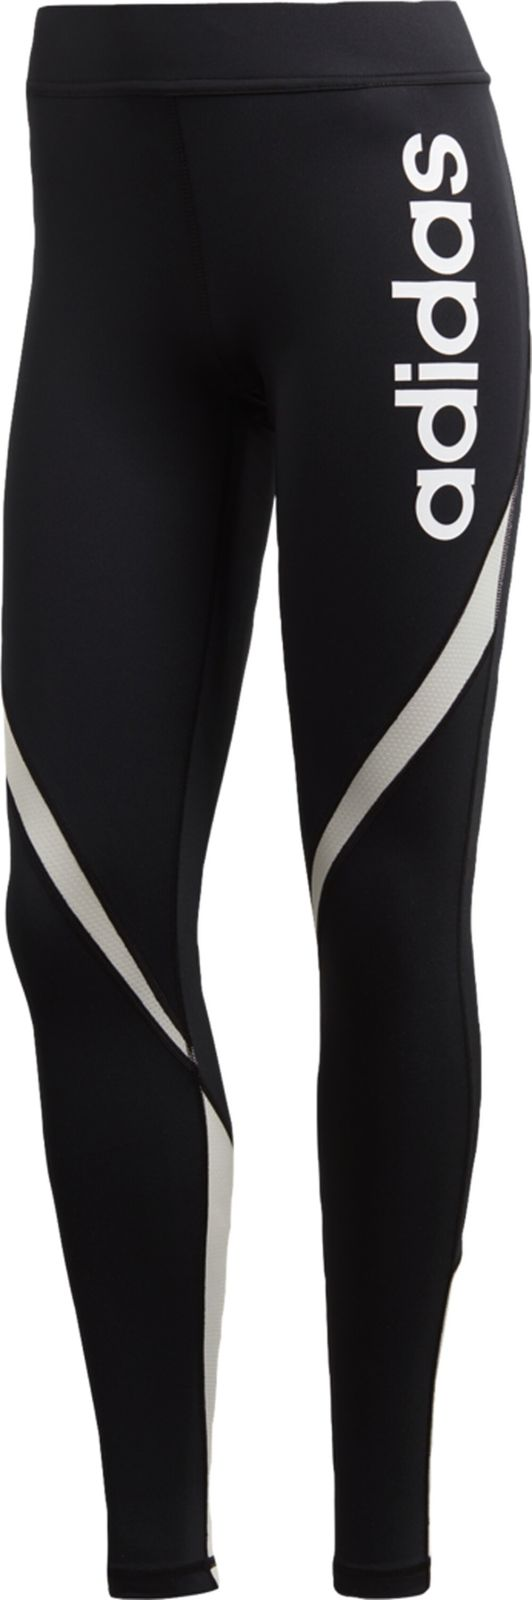 adidas Damen Perfomance Fitnesshose Trainingshose Tight Linear schwarz